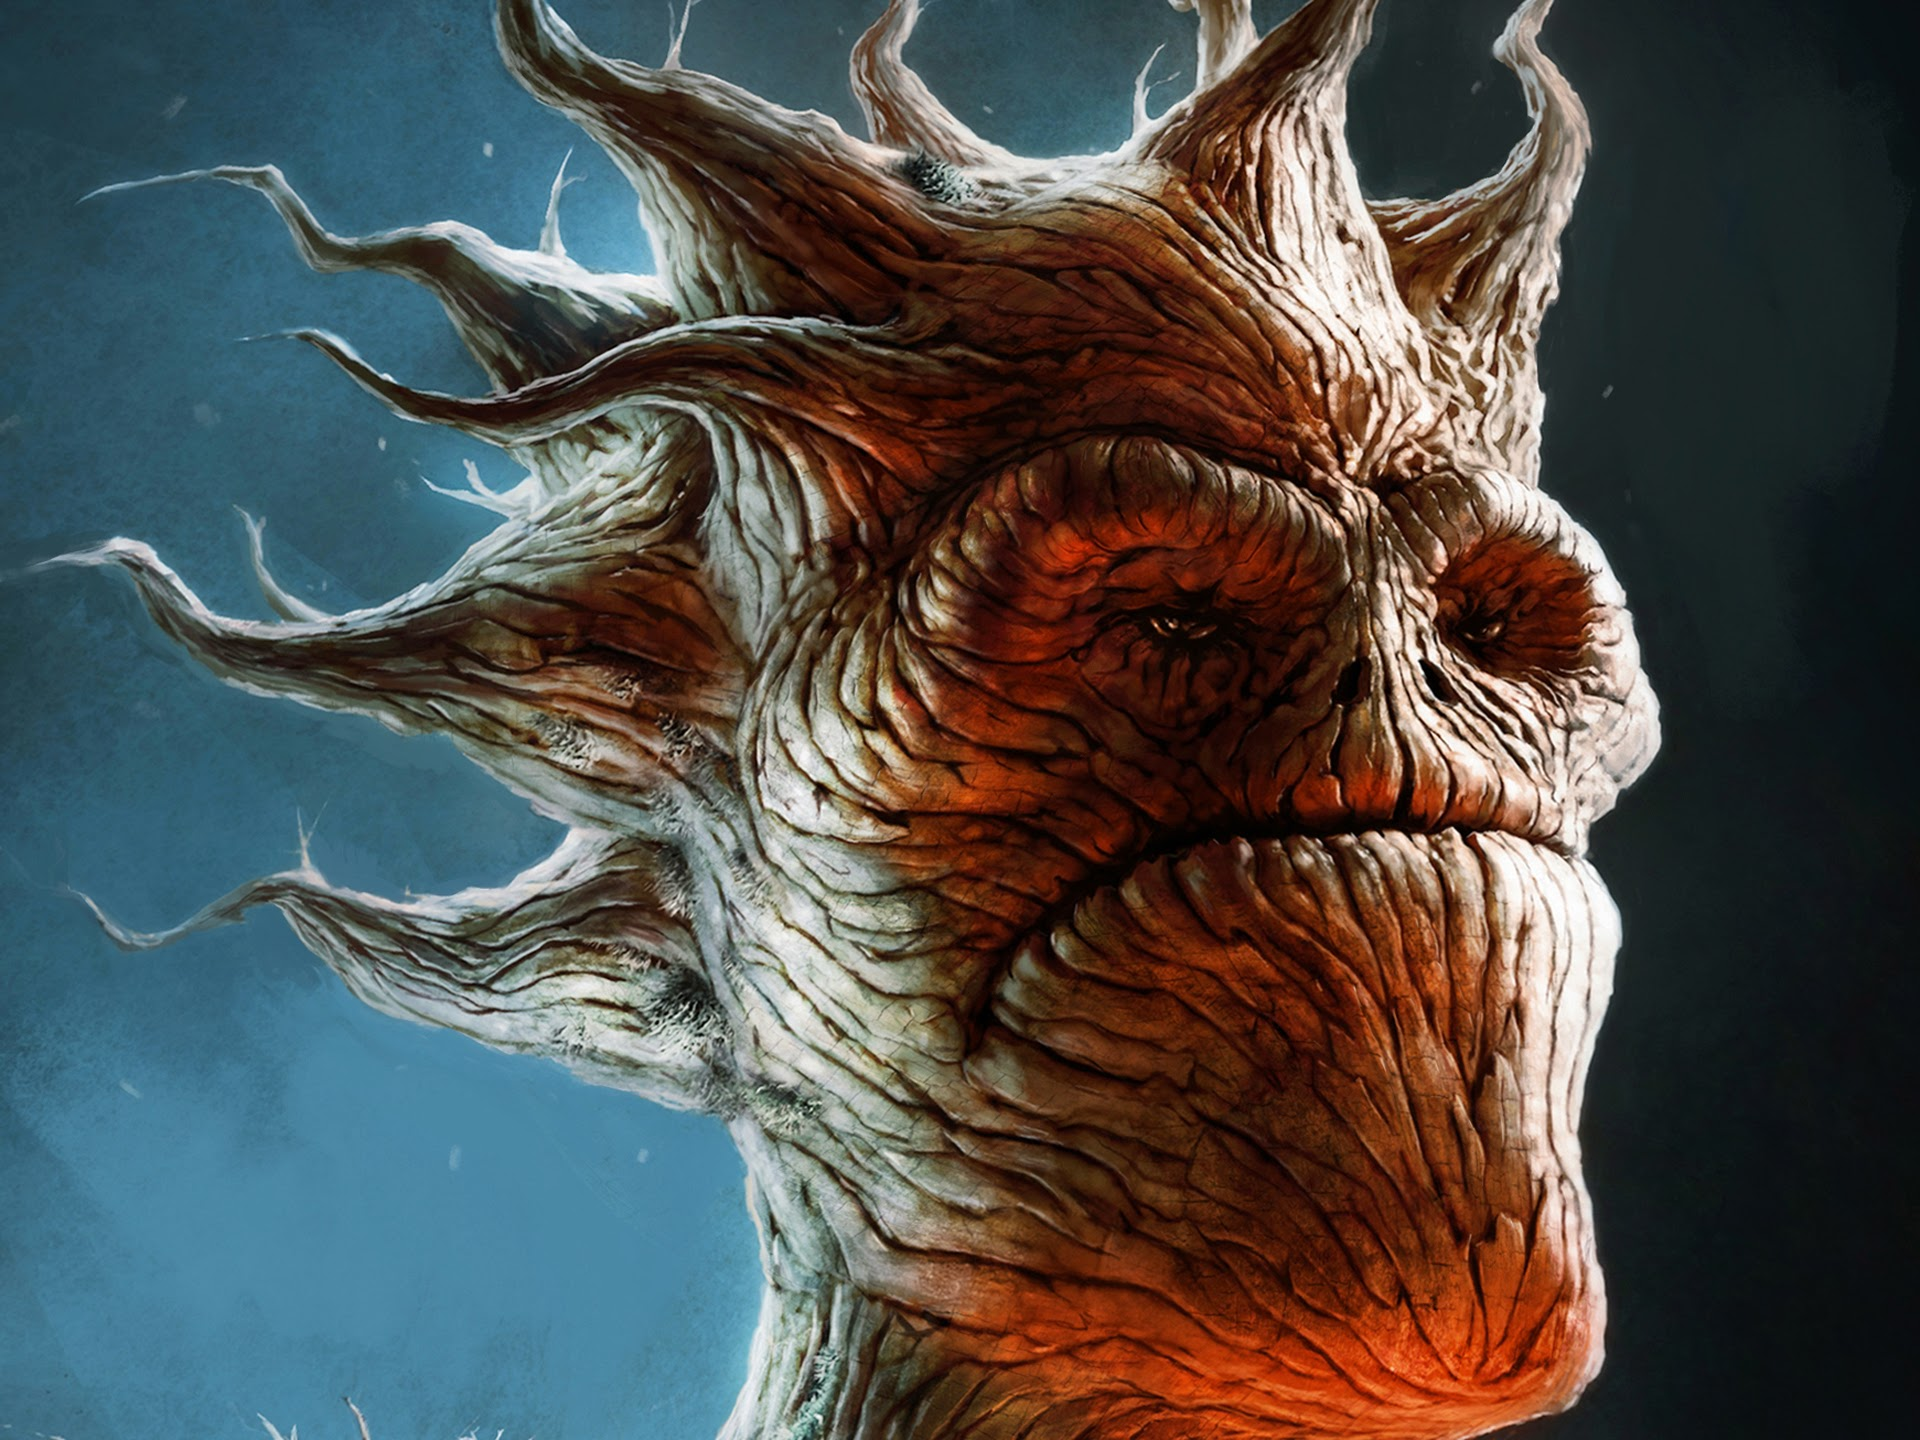 groot guardian of the galaxy 2014